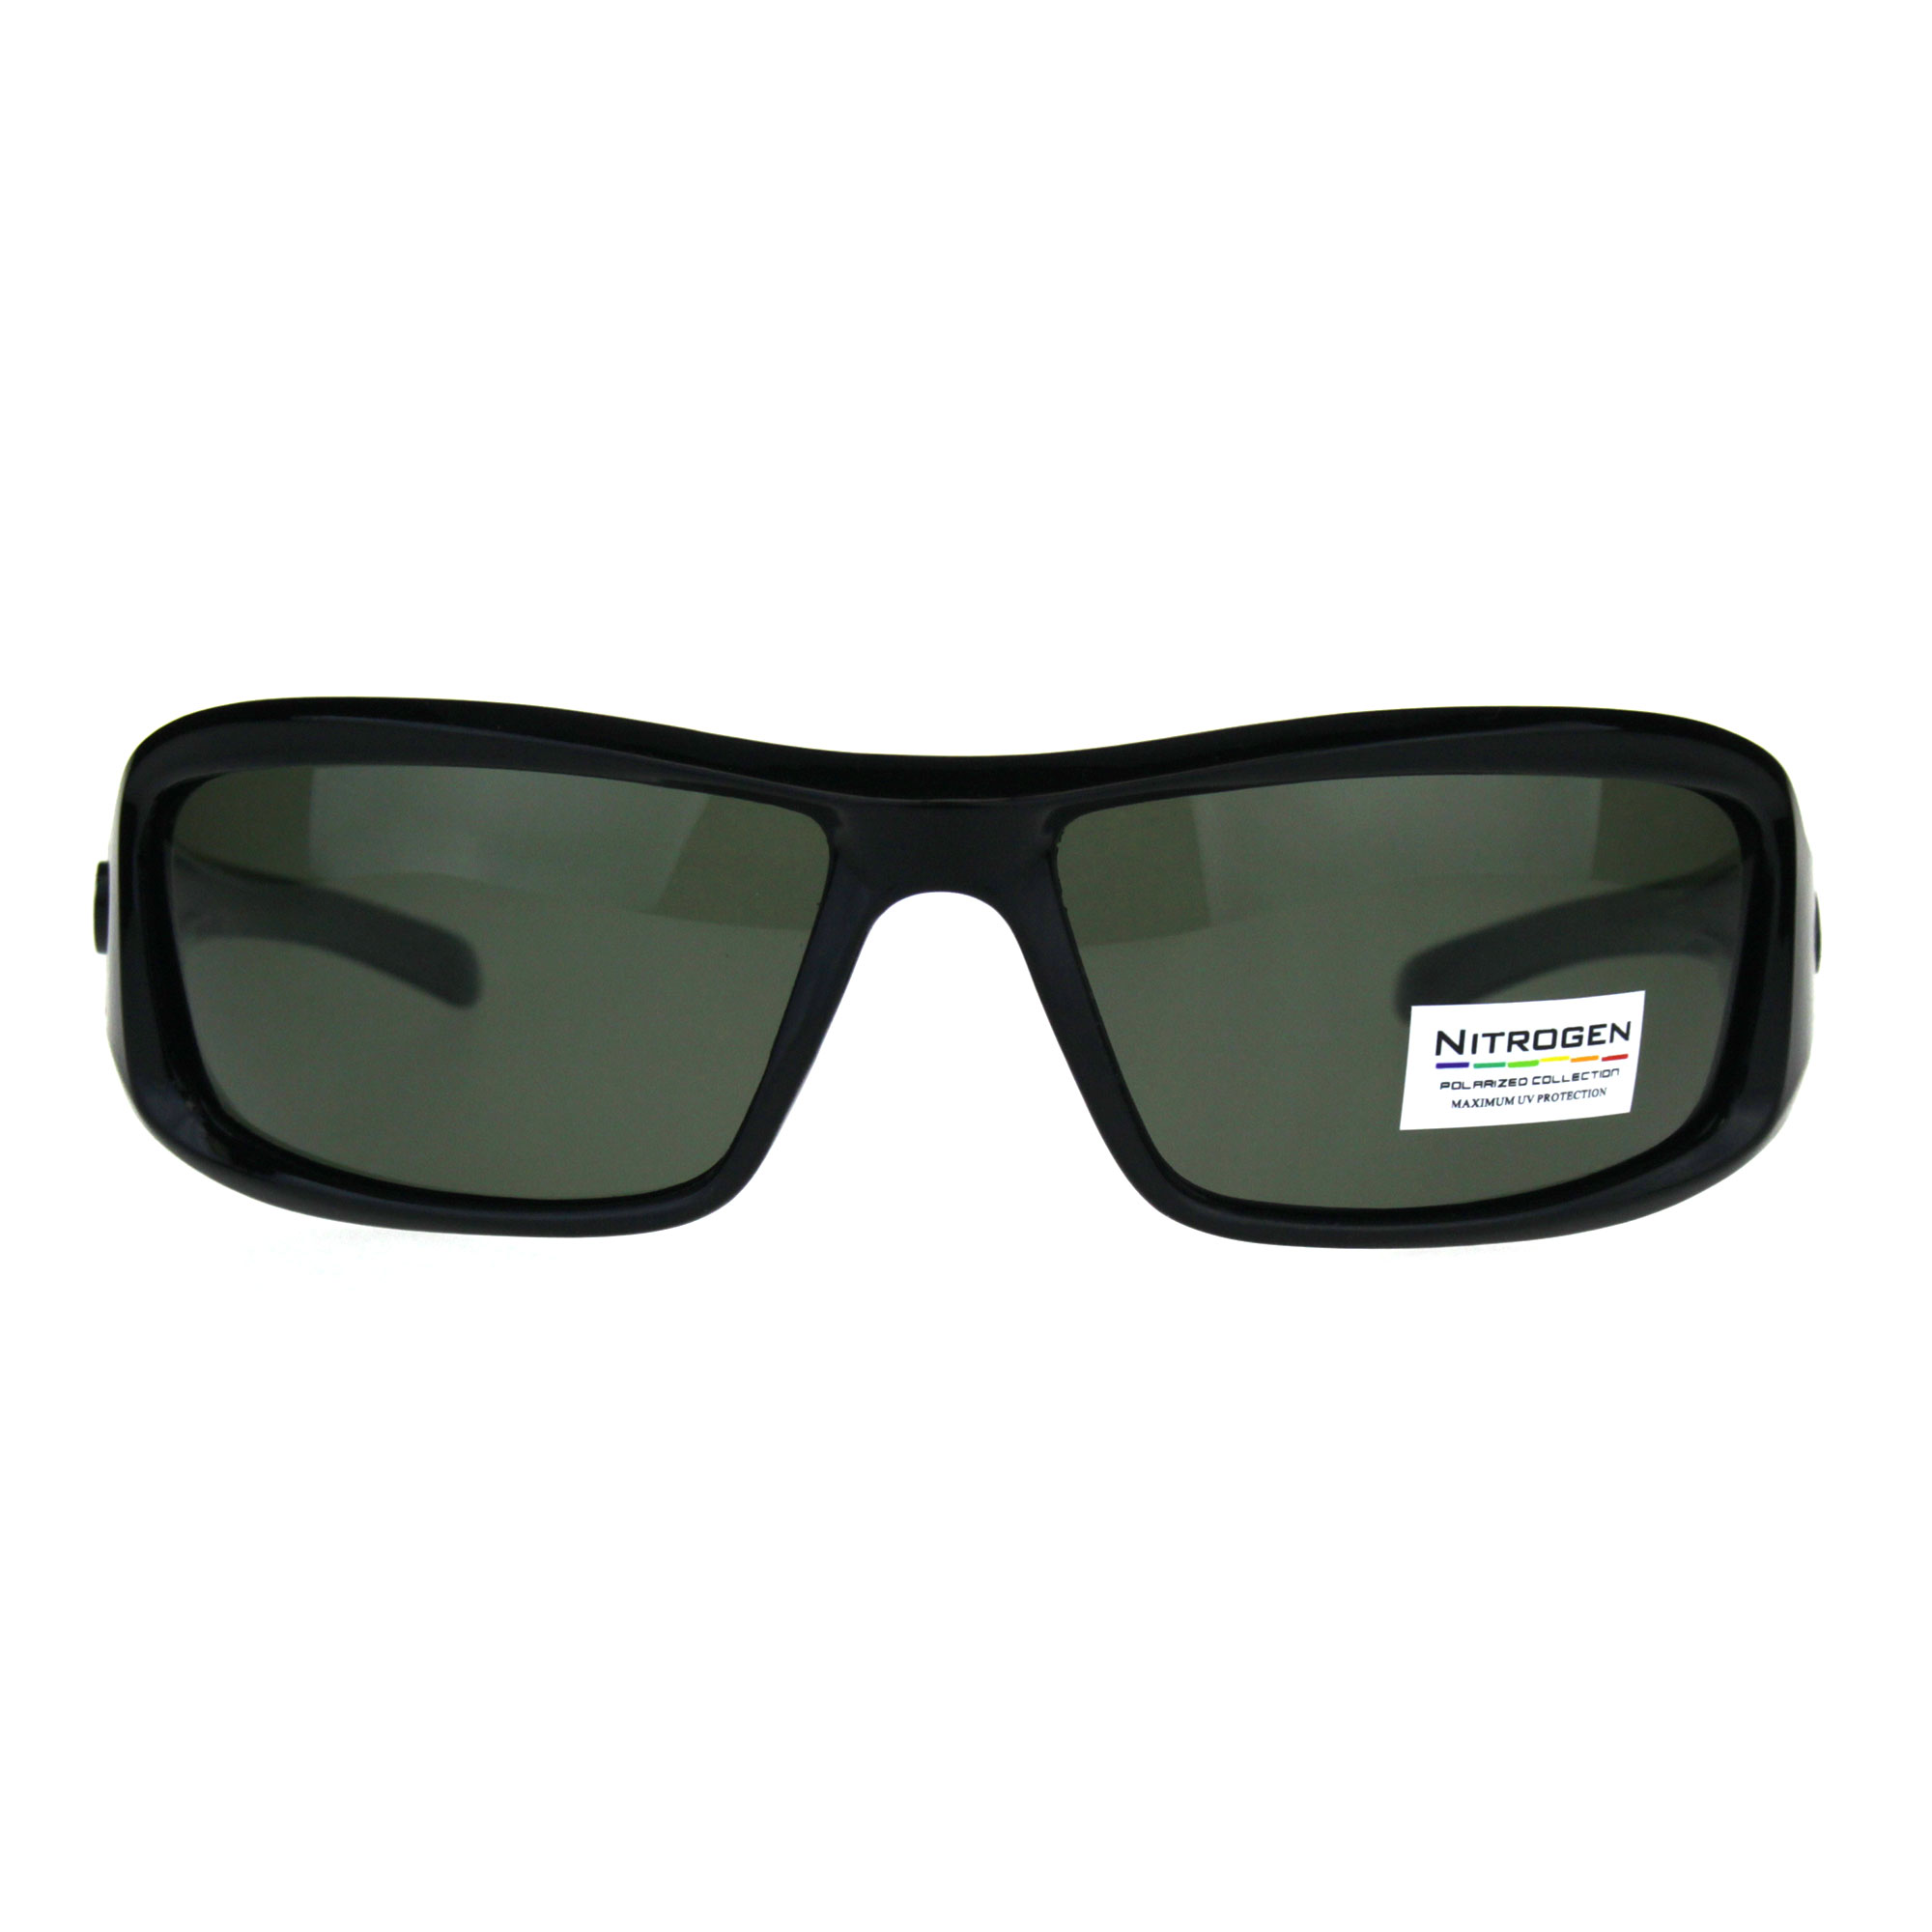 efc0878f6f0 SA106 - Polarized Futuristic Aerodynamic Warp Sport Mens Sunglasses Black  Orange Brown - Walmart.com